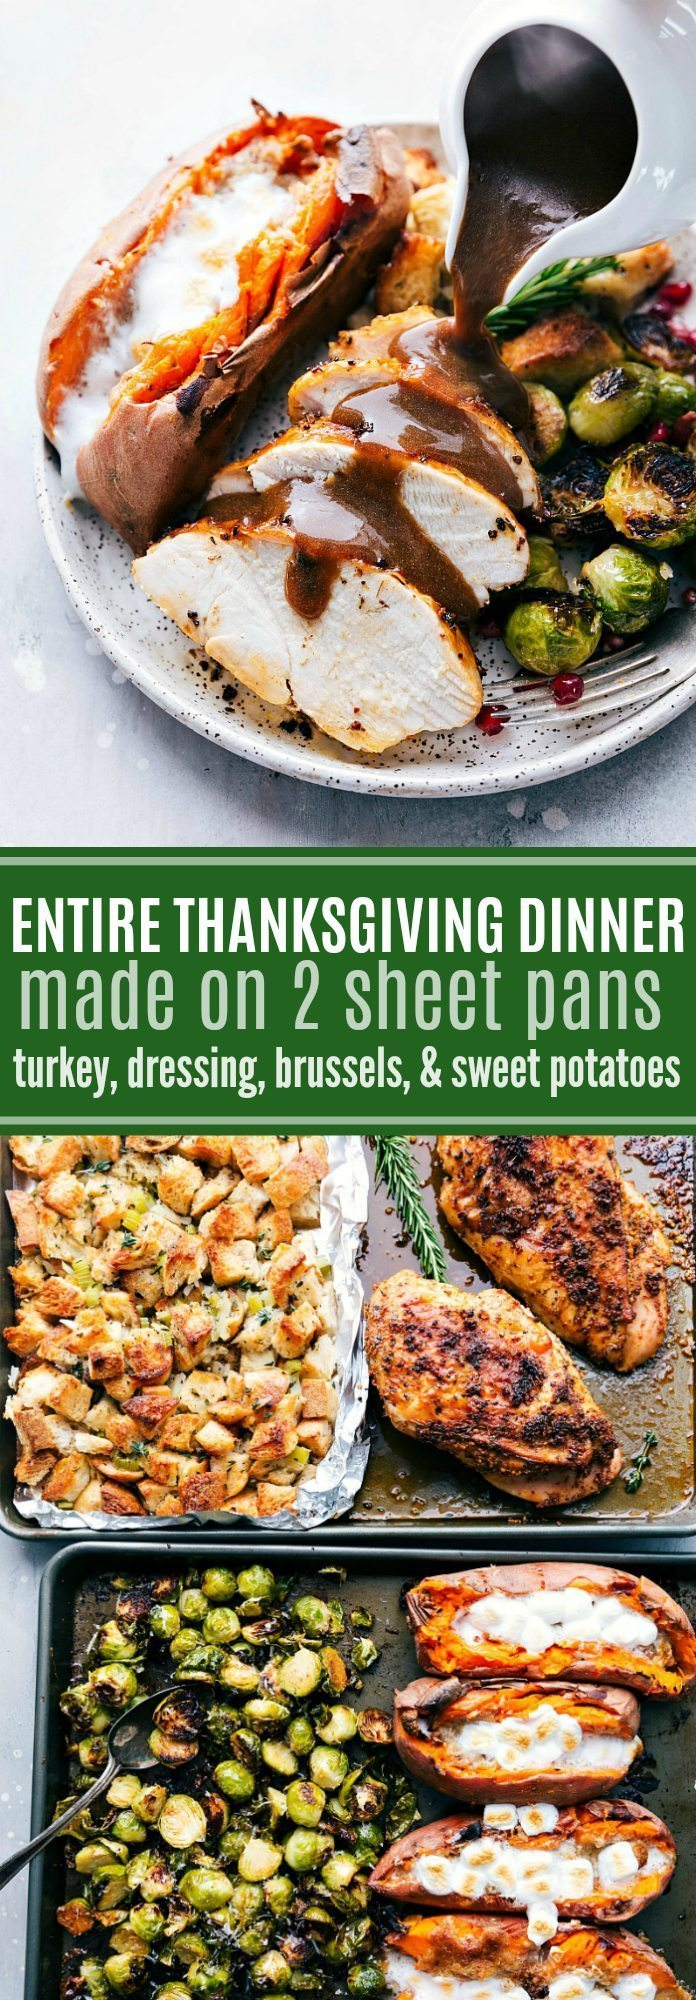 An ENTIRE Thanksgiving Dinner (turkey breast + gravy, candied sweet potatoes, dressing, and parmesan brussels sprouts) all made on two sheet pans. I chelseasmessyapron.com I #thanksgiving #dinner #sheetpan #brussels #sweetpotato #dressing #easy #turkey #turkeybreast